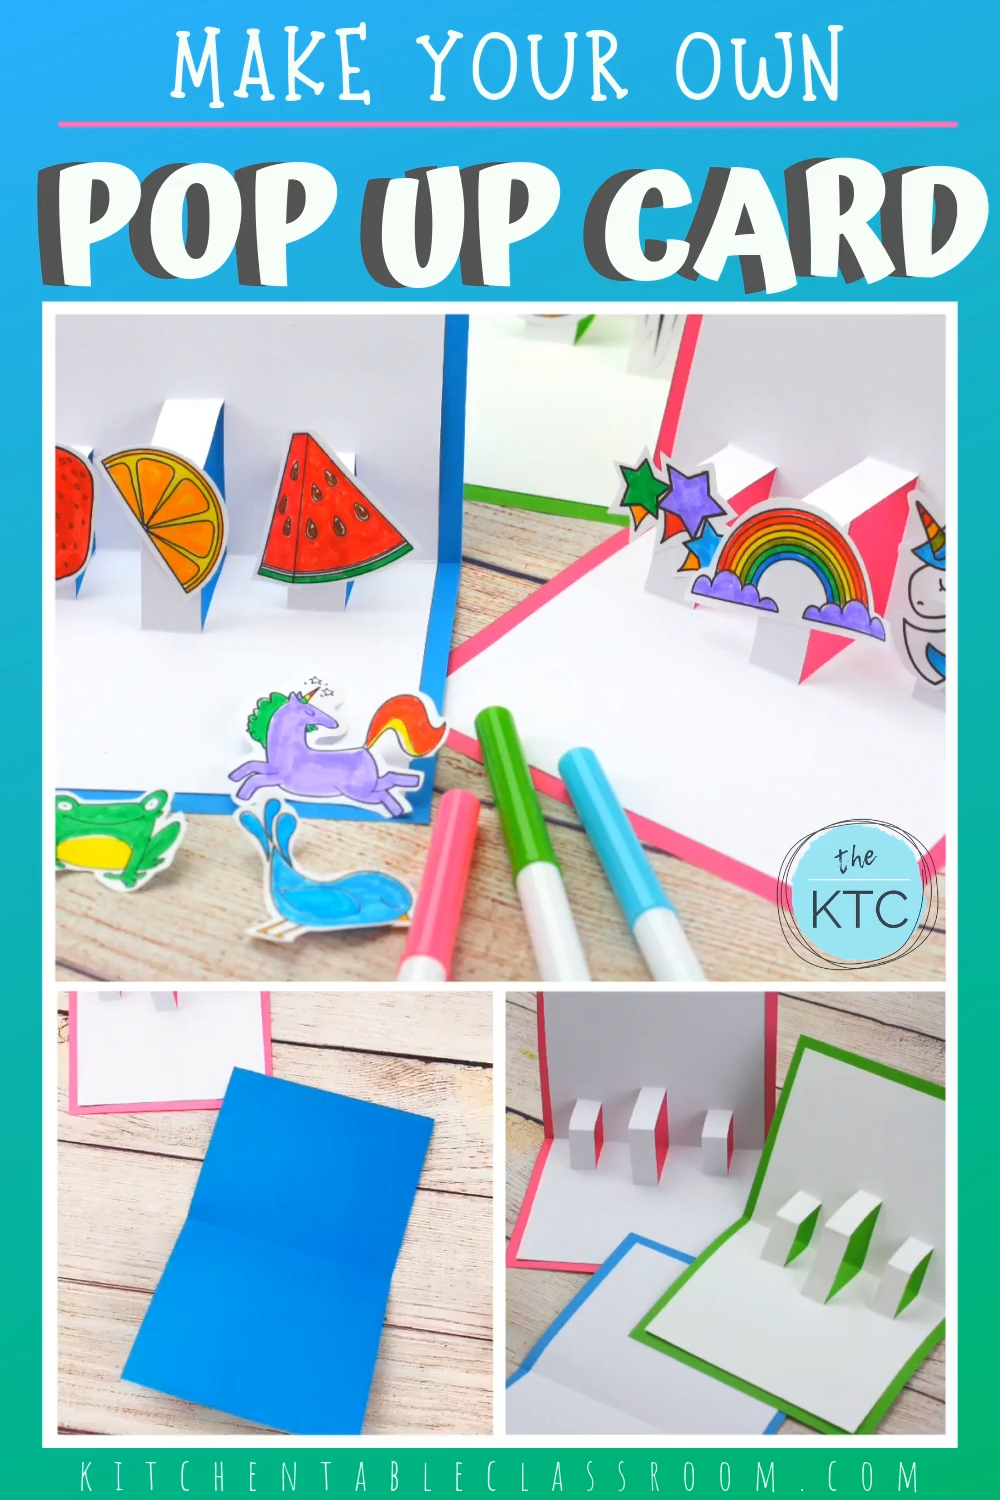 Pop Up Card Templates Kids Art Projects Cards Diy Easy Arts And Crafts For Kids Fu Pop Up Card Templates Kids Art Projects Arts And Crafts For Kids